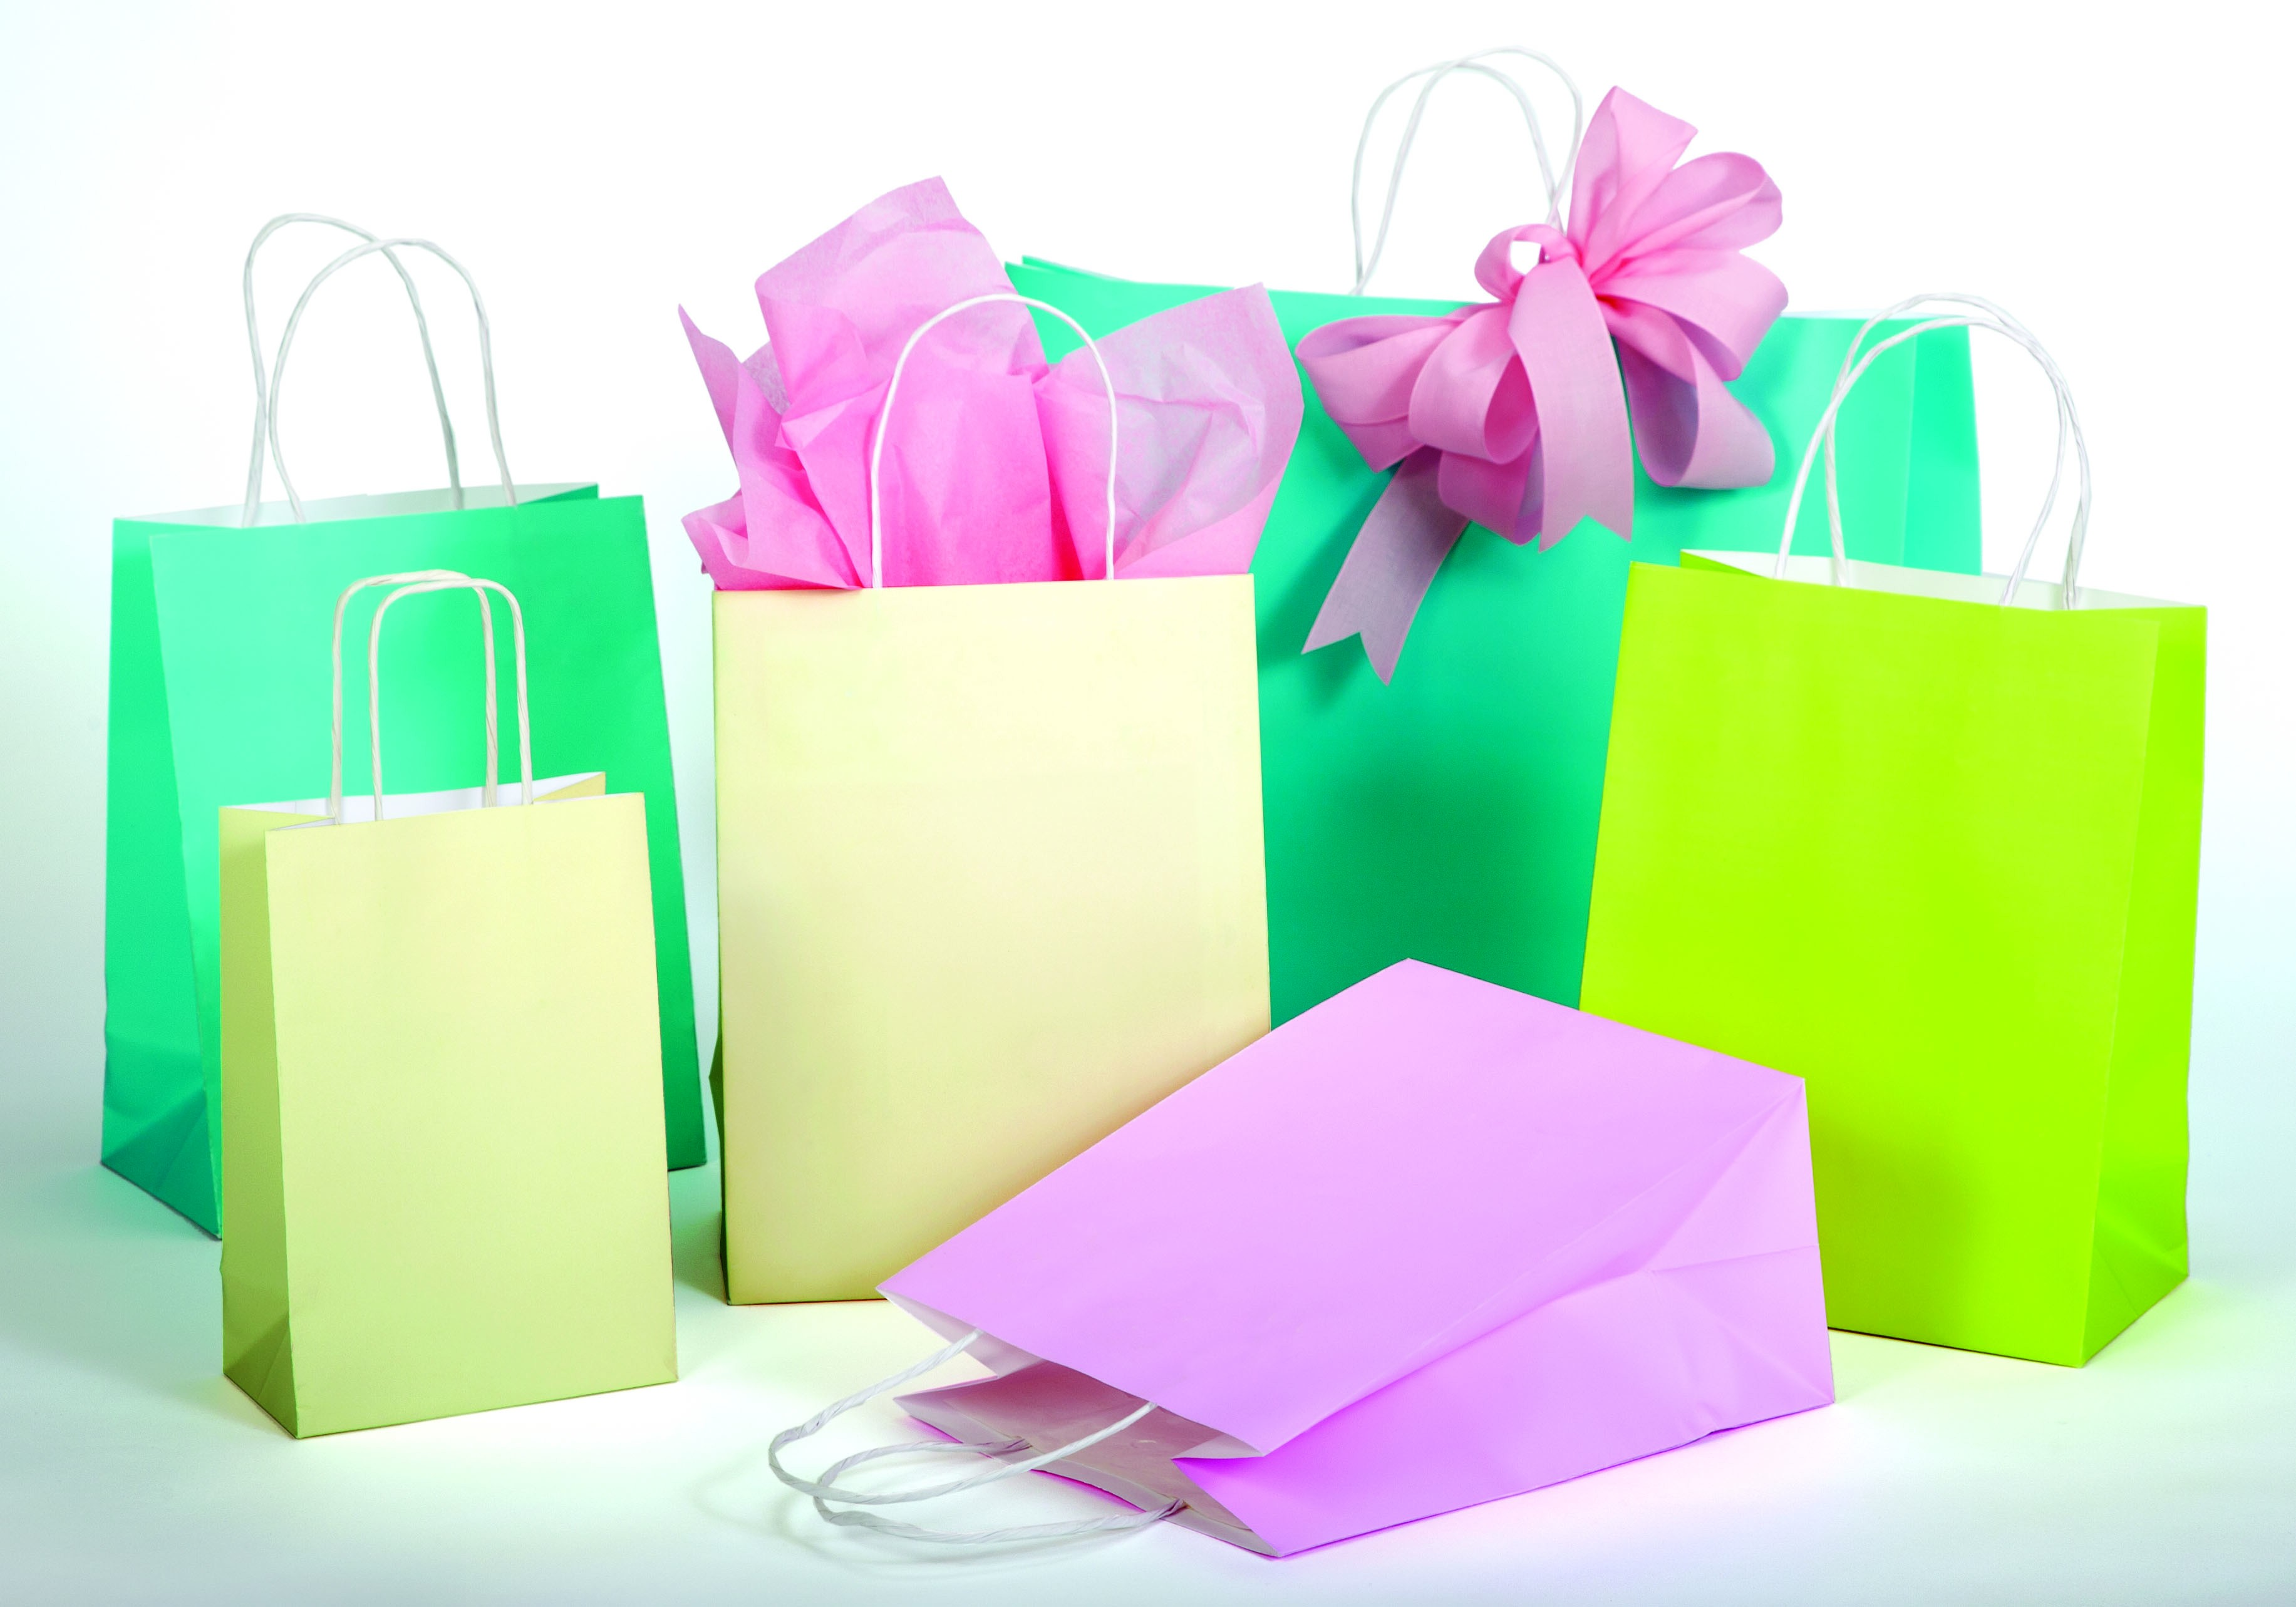 Shopping bags images